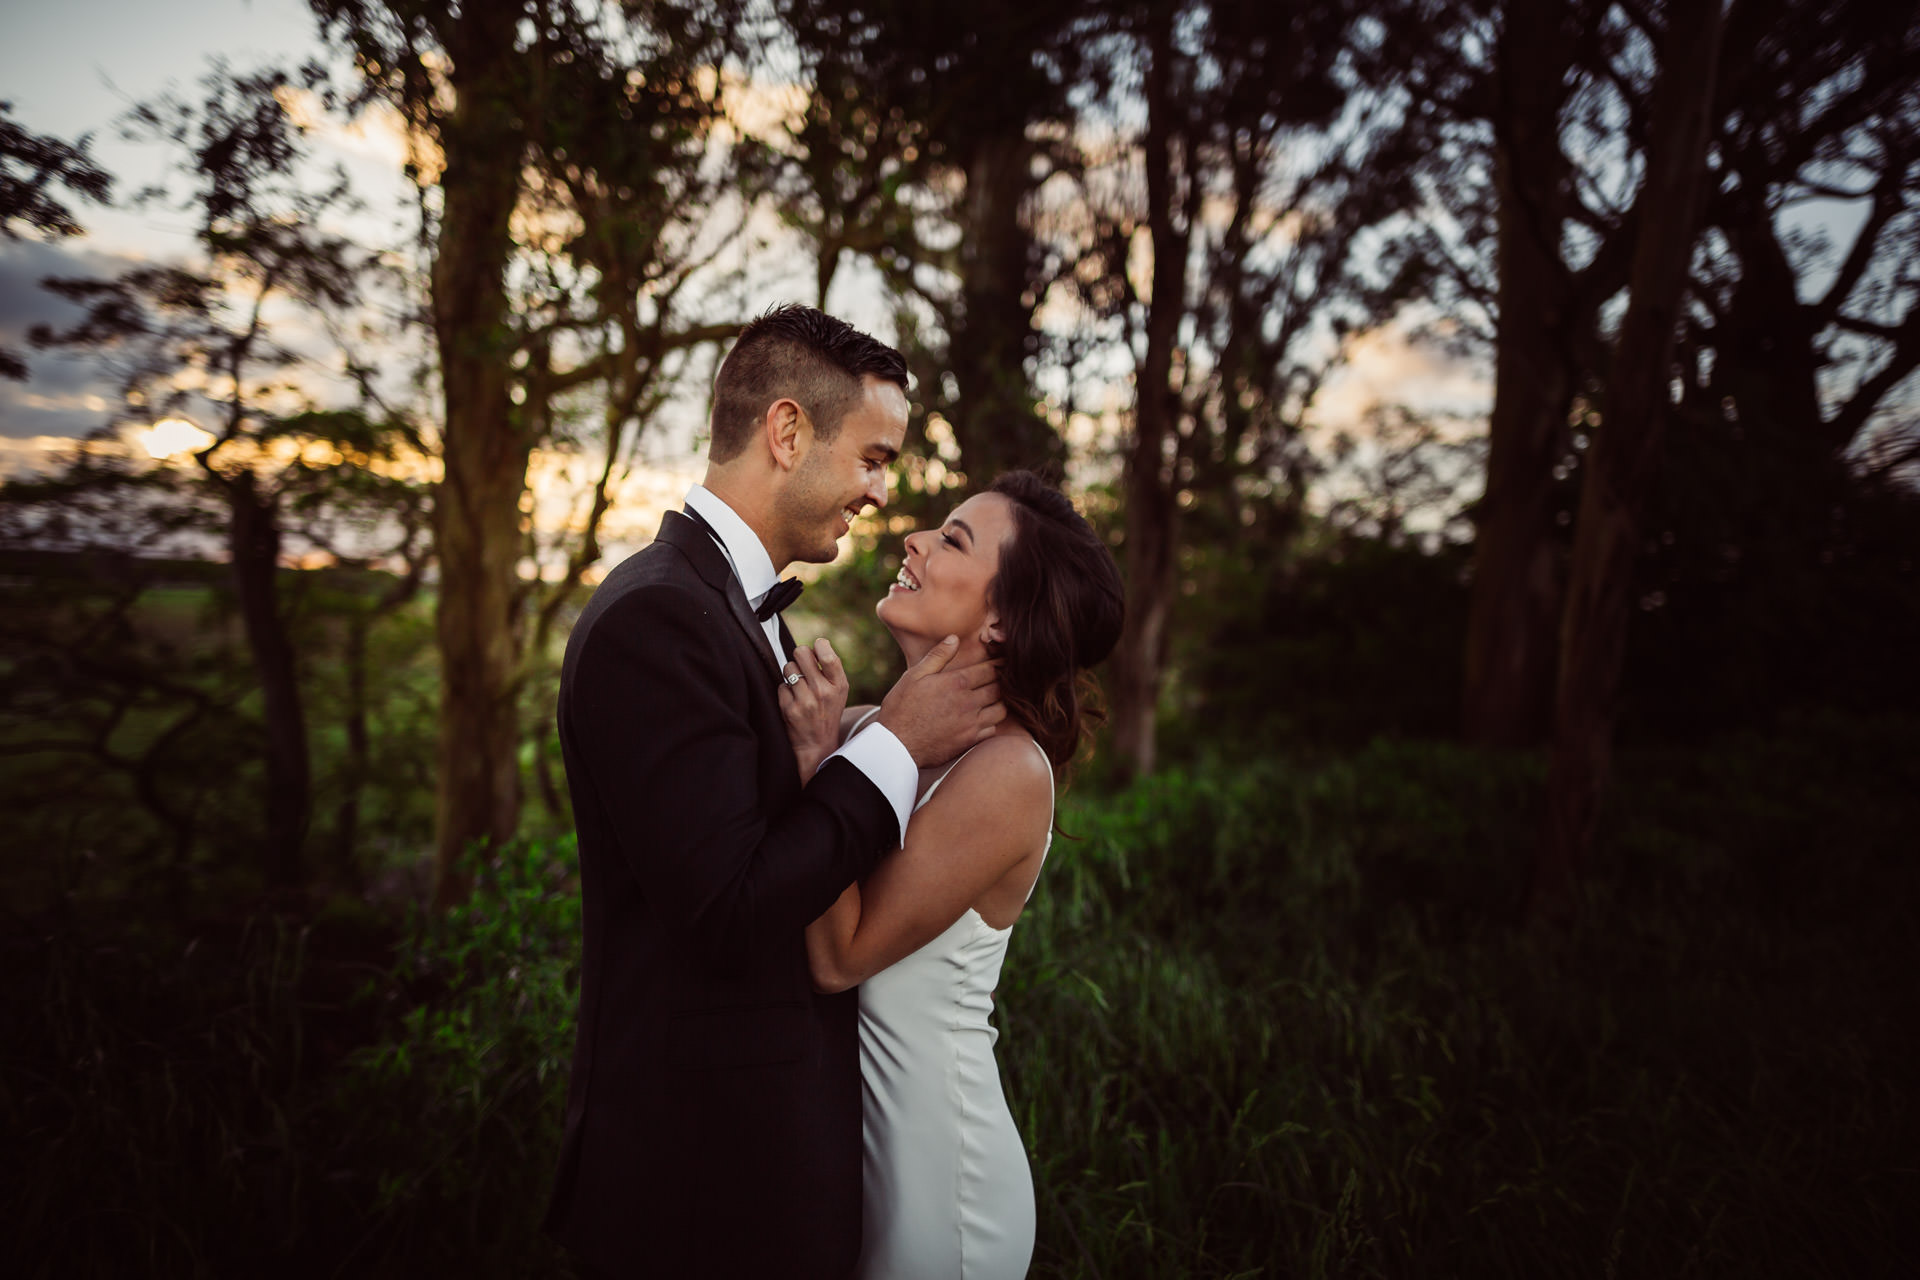 1_top_4992_the_official_photographers_wedding_styled_newzealand